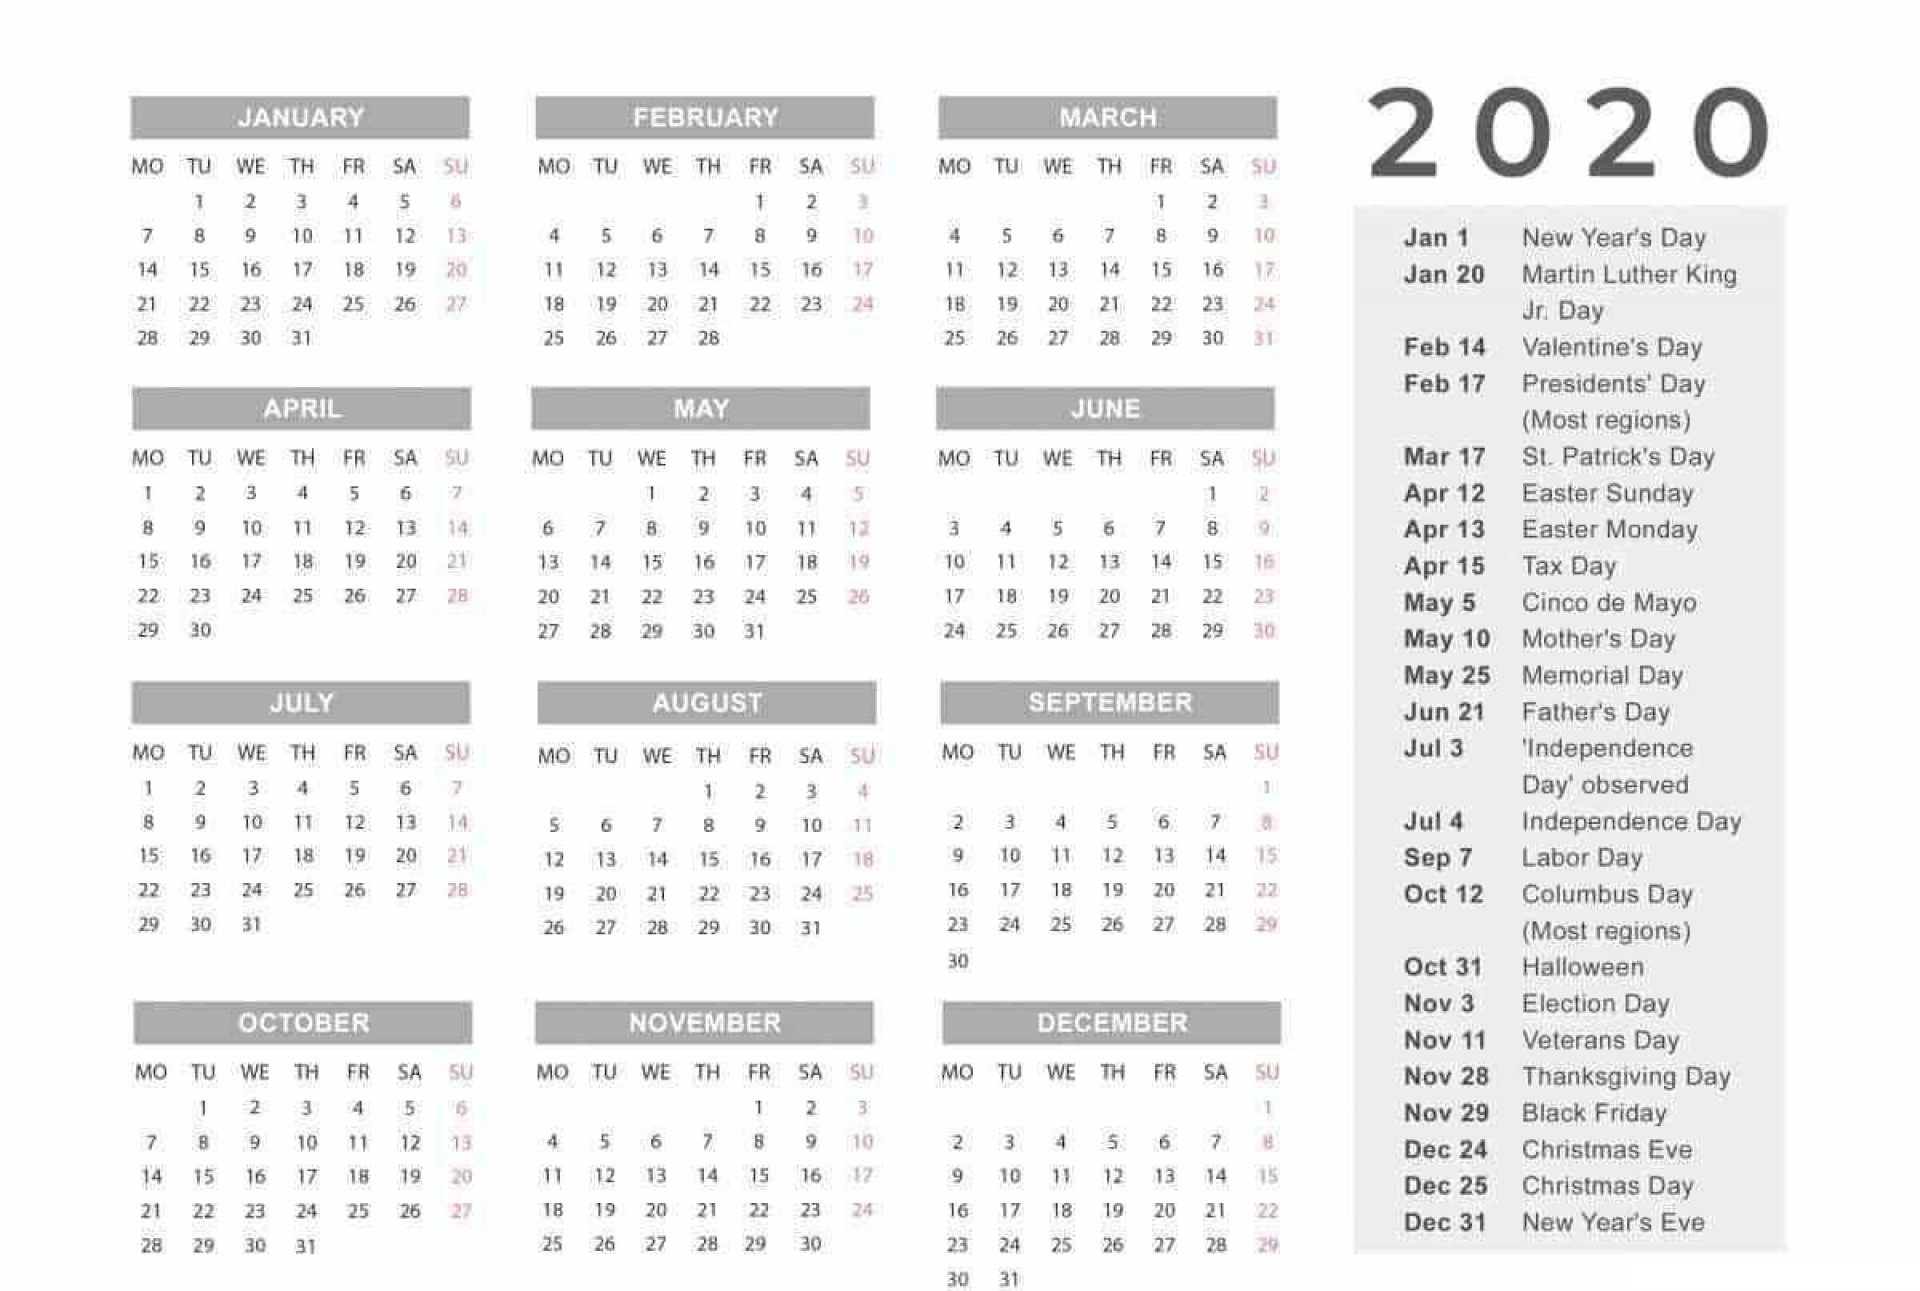 004 Staggering Payroll Calendar Template 2020 Photo  Biweekly Schedule Excel Free1920